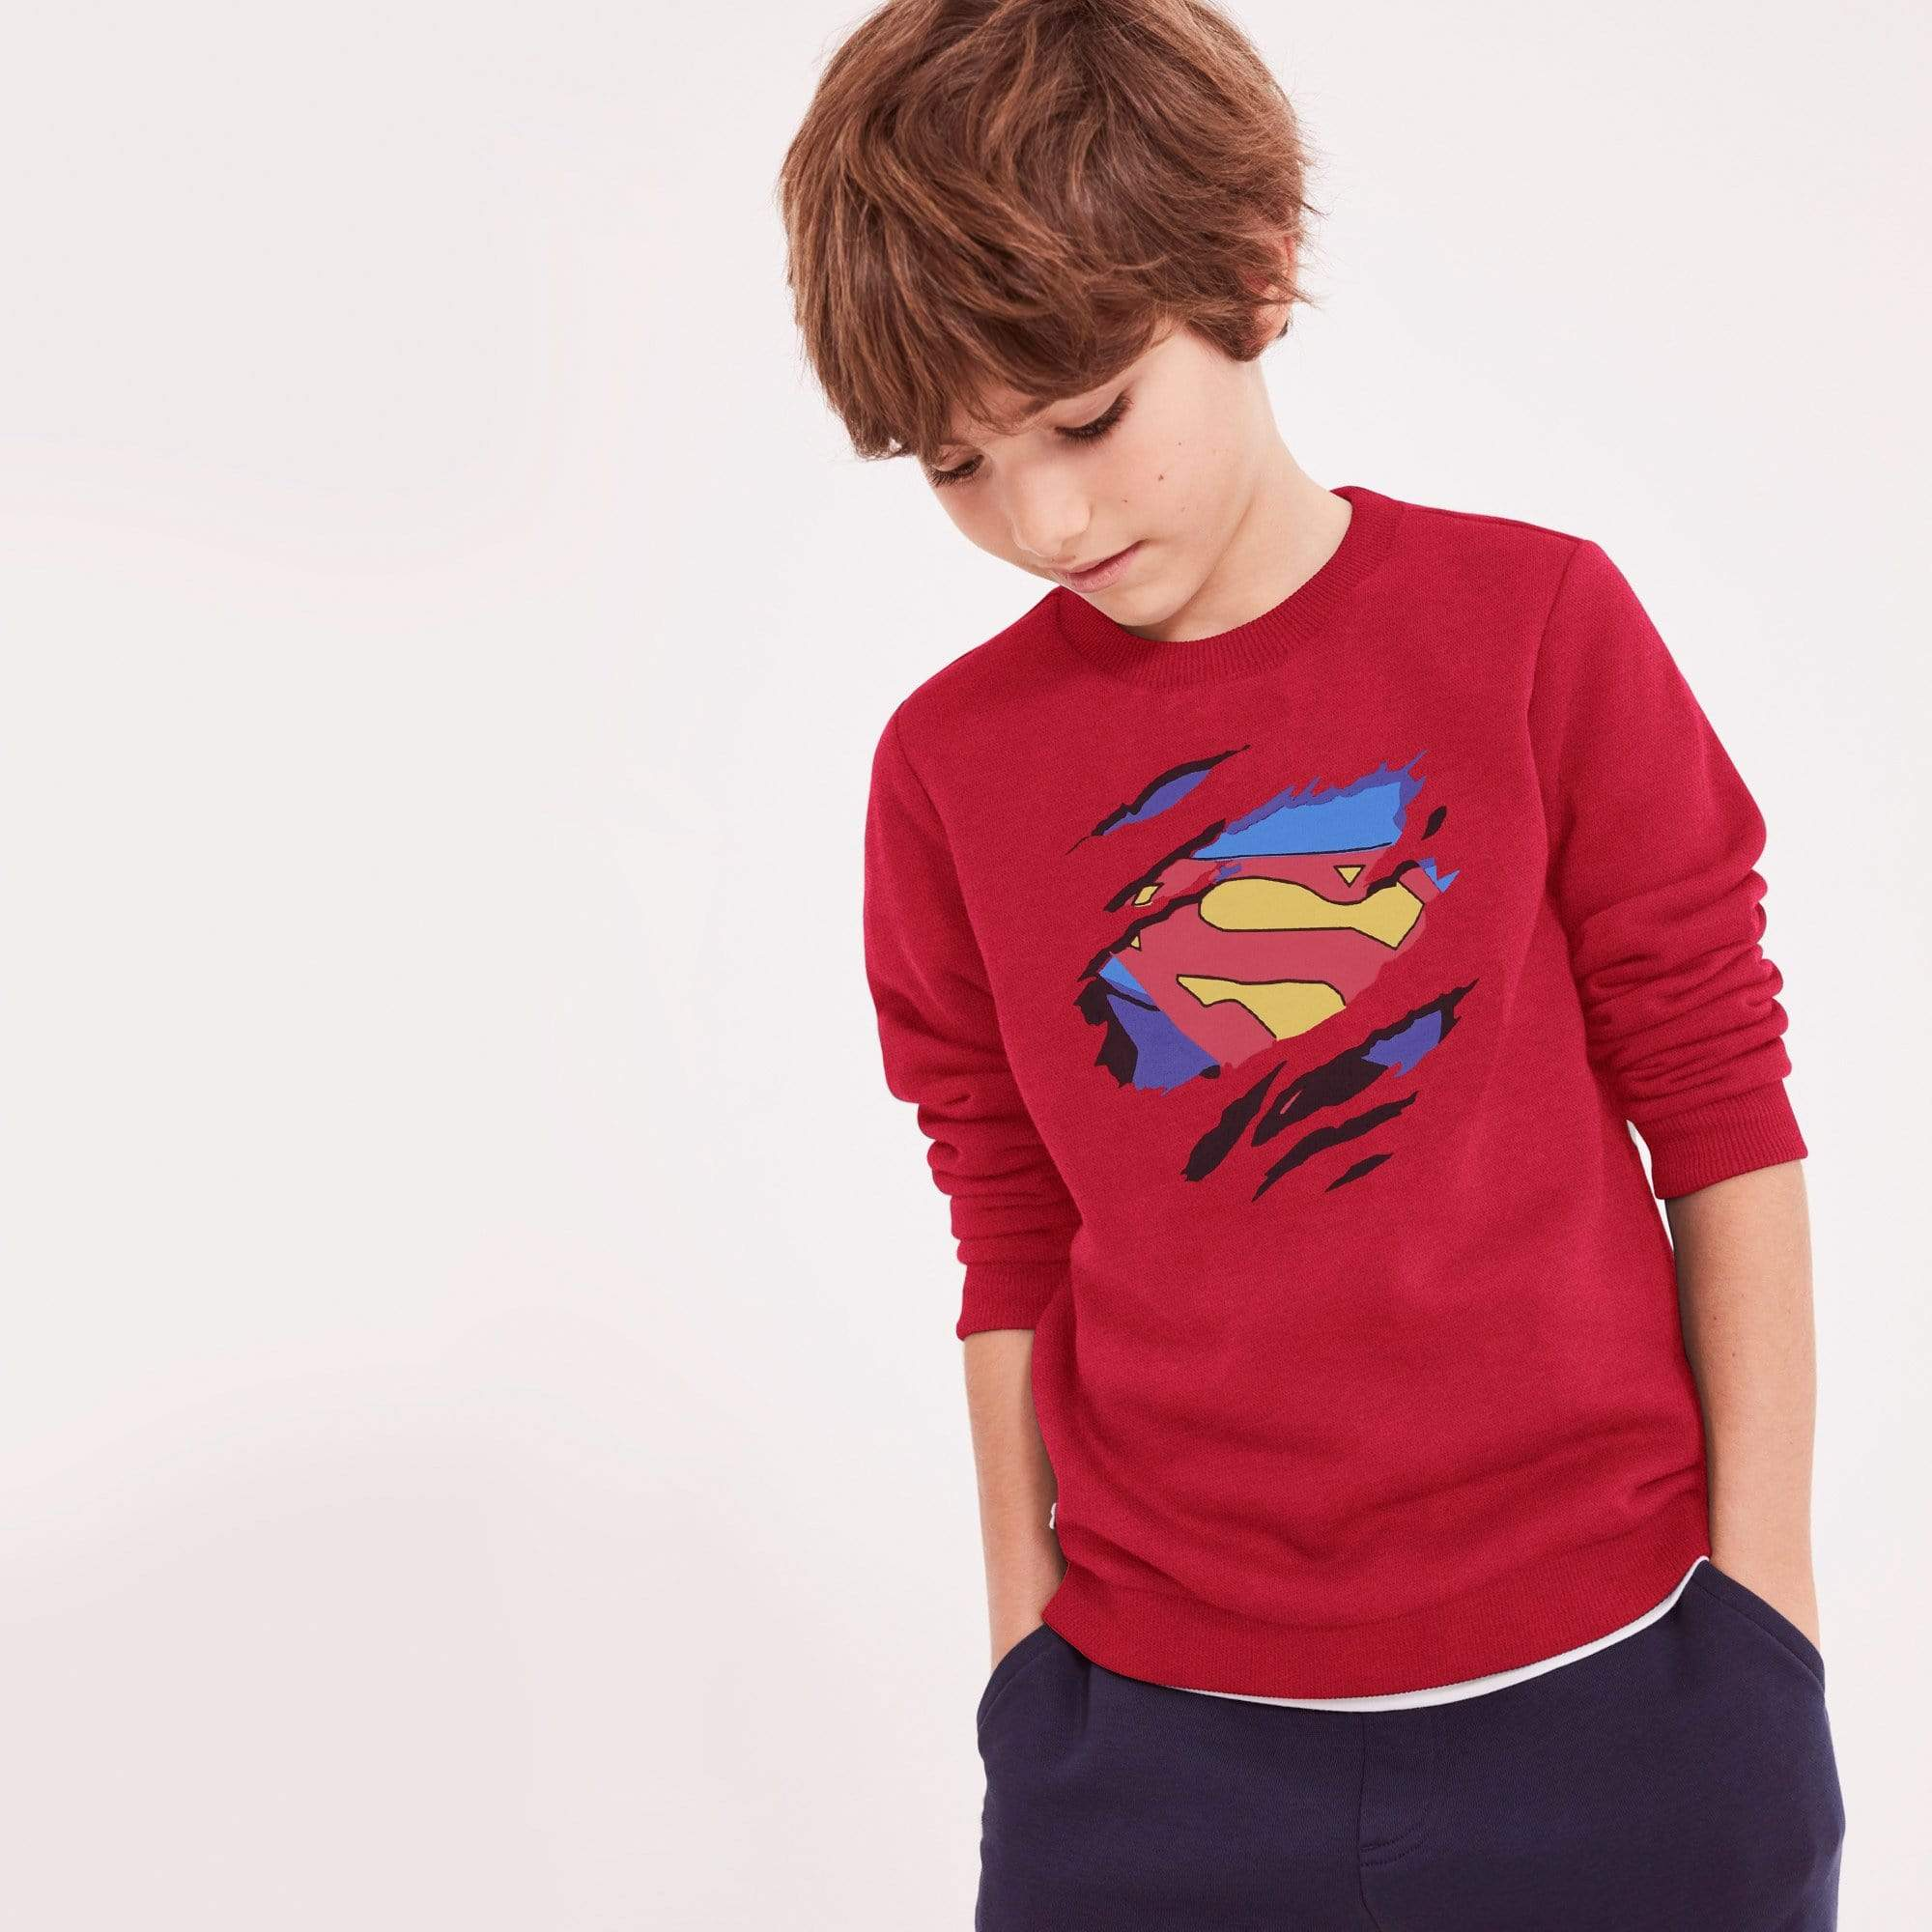 Stone Harbor Kid's Sweatshirt Red / 4-5 Years MUST HAVE Boy's Stone Harbor SUPERMAN Crew Neck Sweatshirt